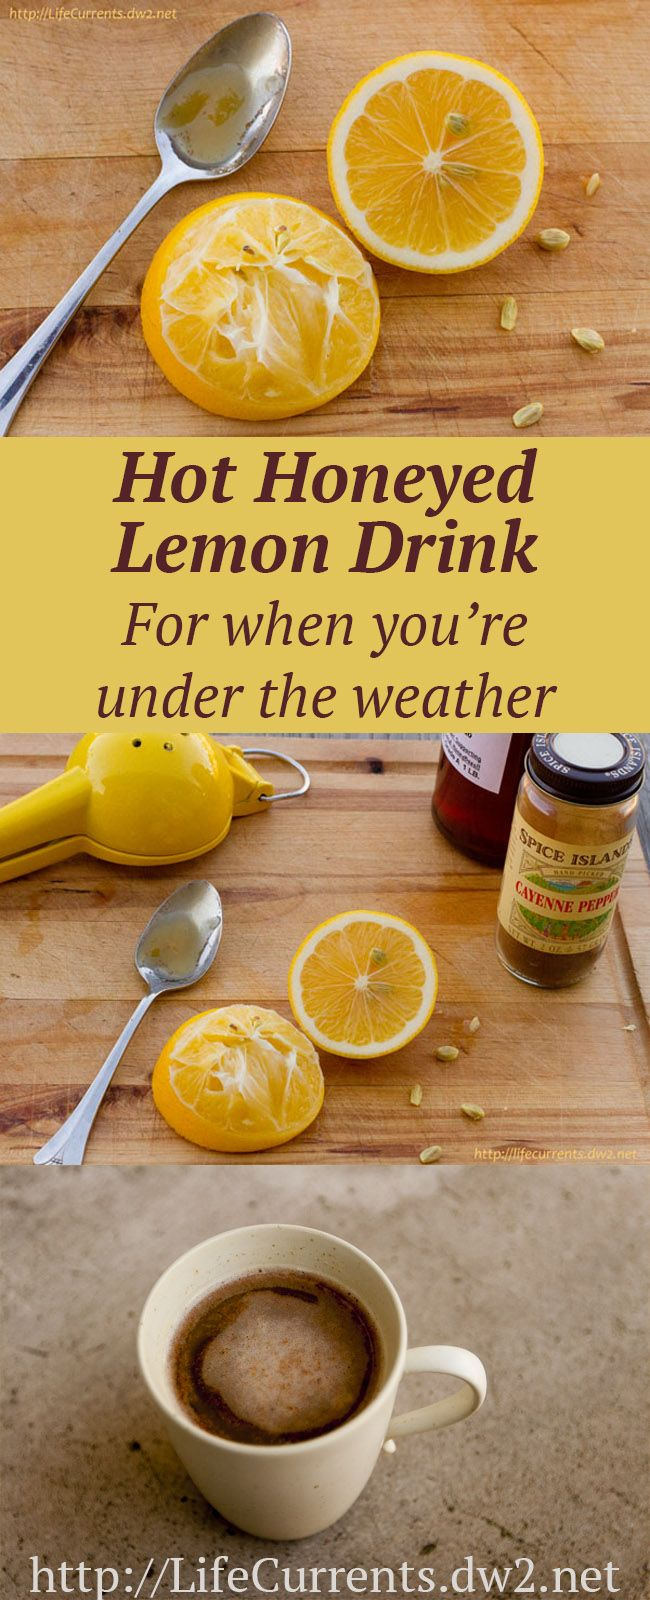 The Hot Honeyed Lemon Drink: Sip on this hot drink to open sinuses and make your throat feel better. And I give you 3 more of my favorite ways to feel a bit better when the flu might have a hold of you or someone you love.: